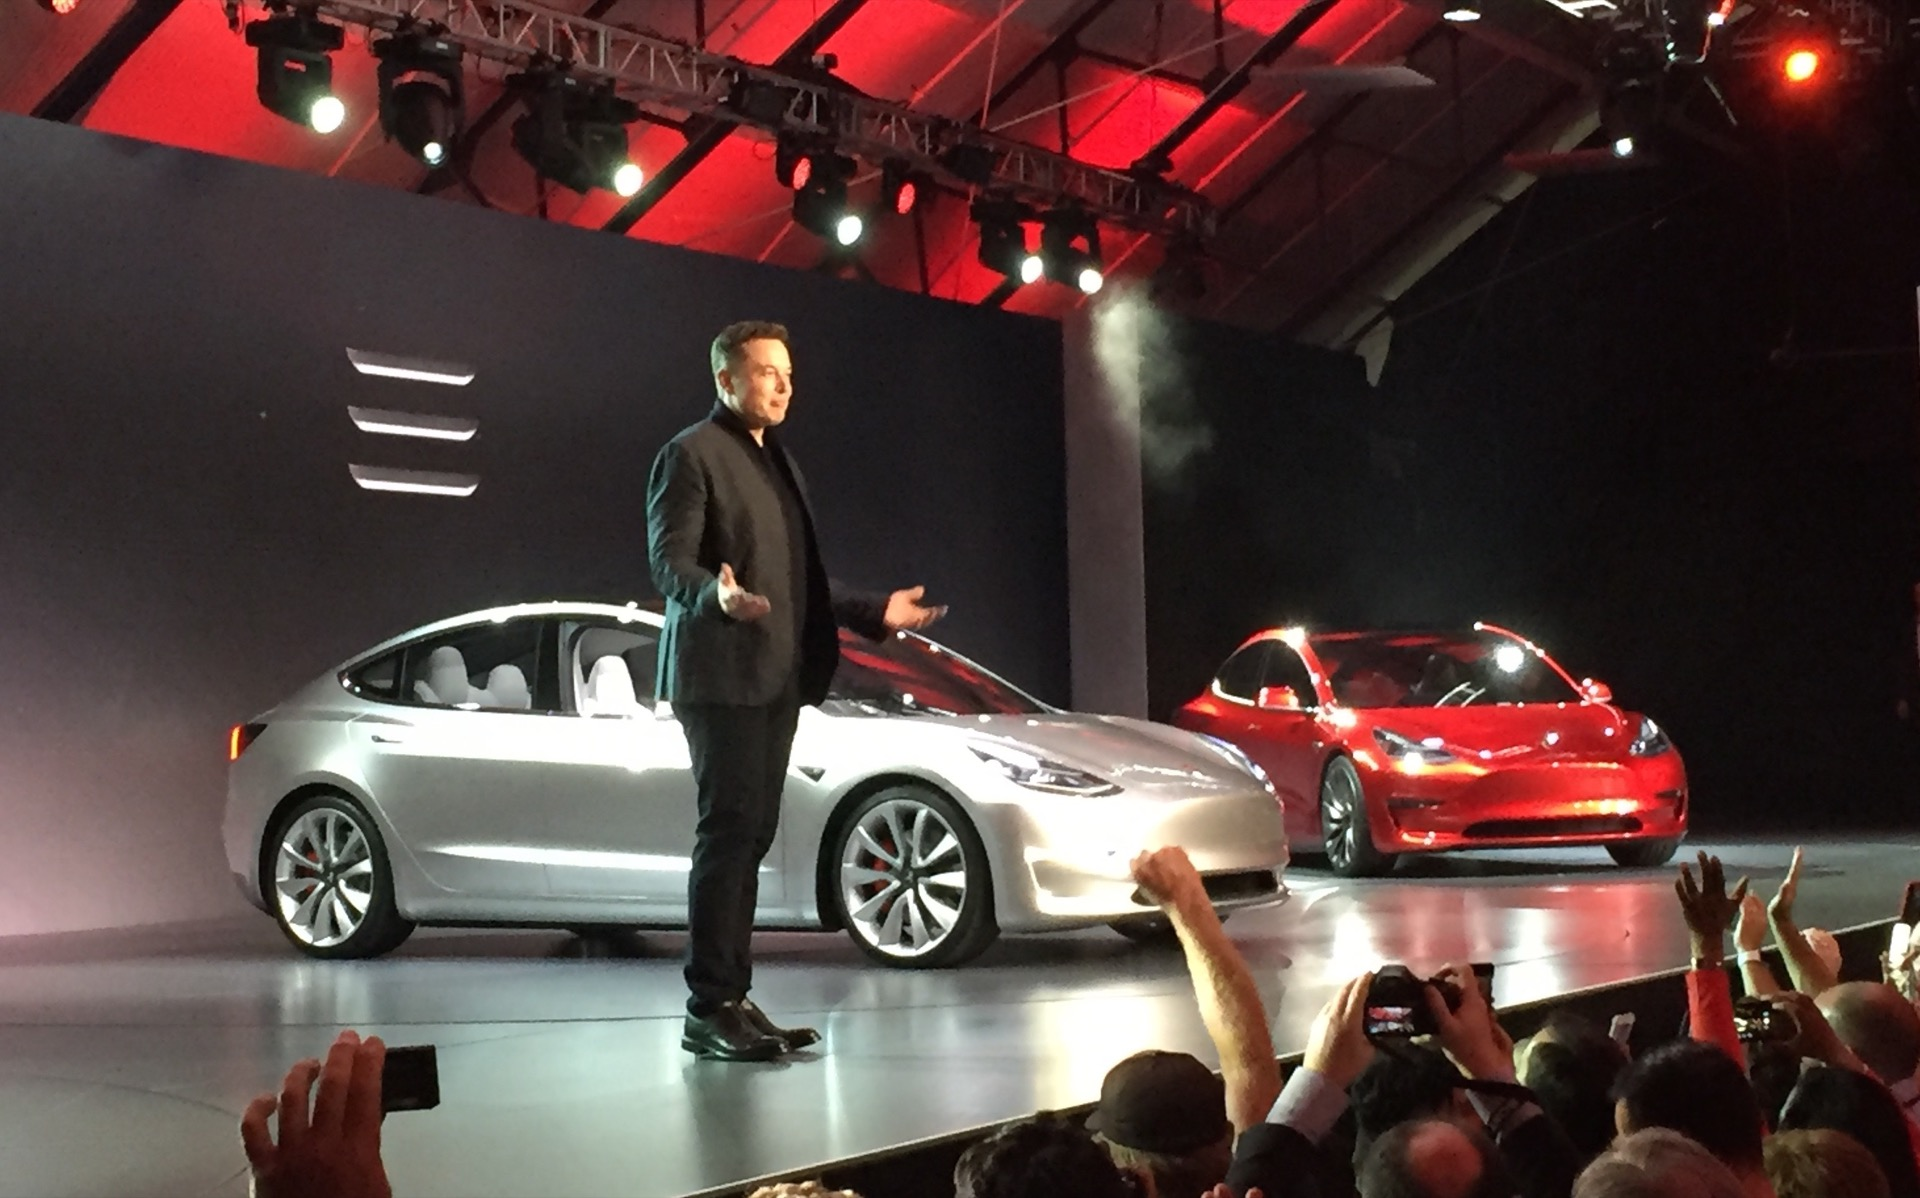 Musk Tesla The Musk Tesla Superchargers Won T Be Free For Model 3 Owners